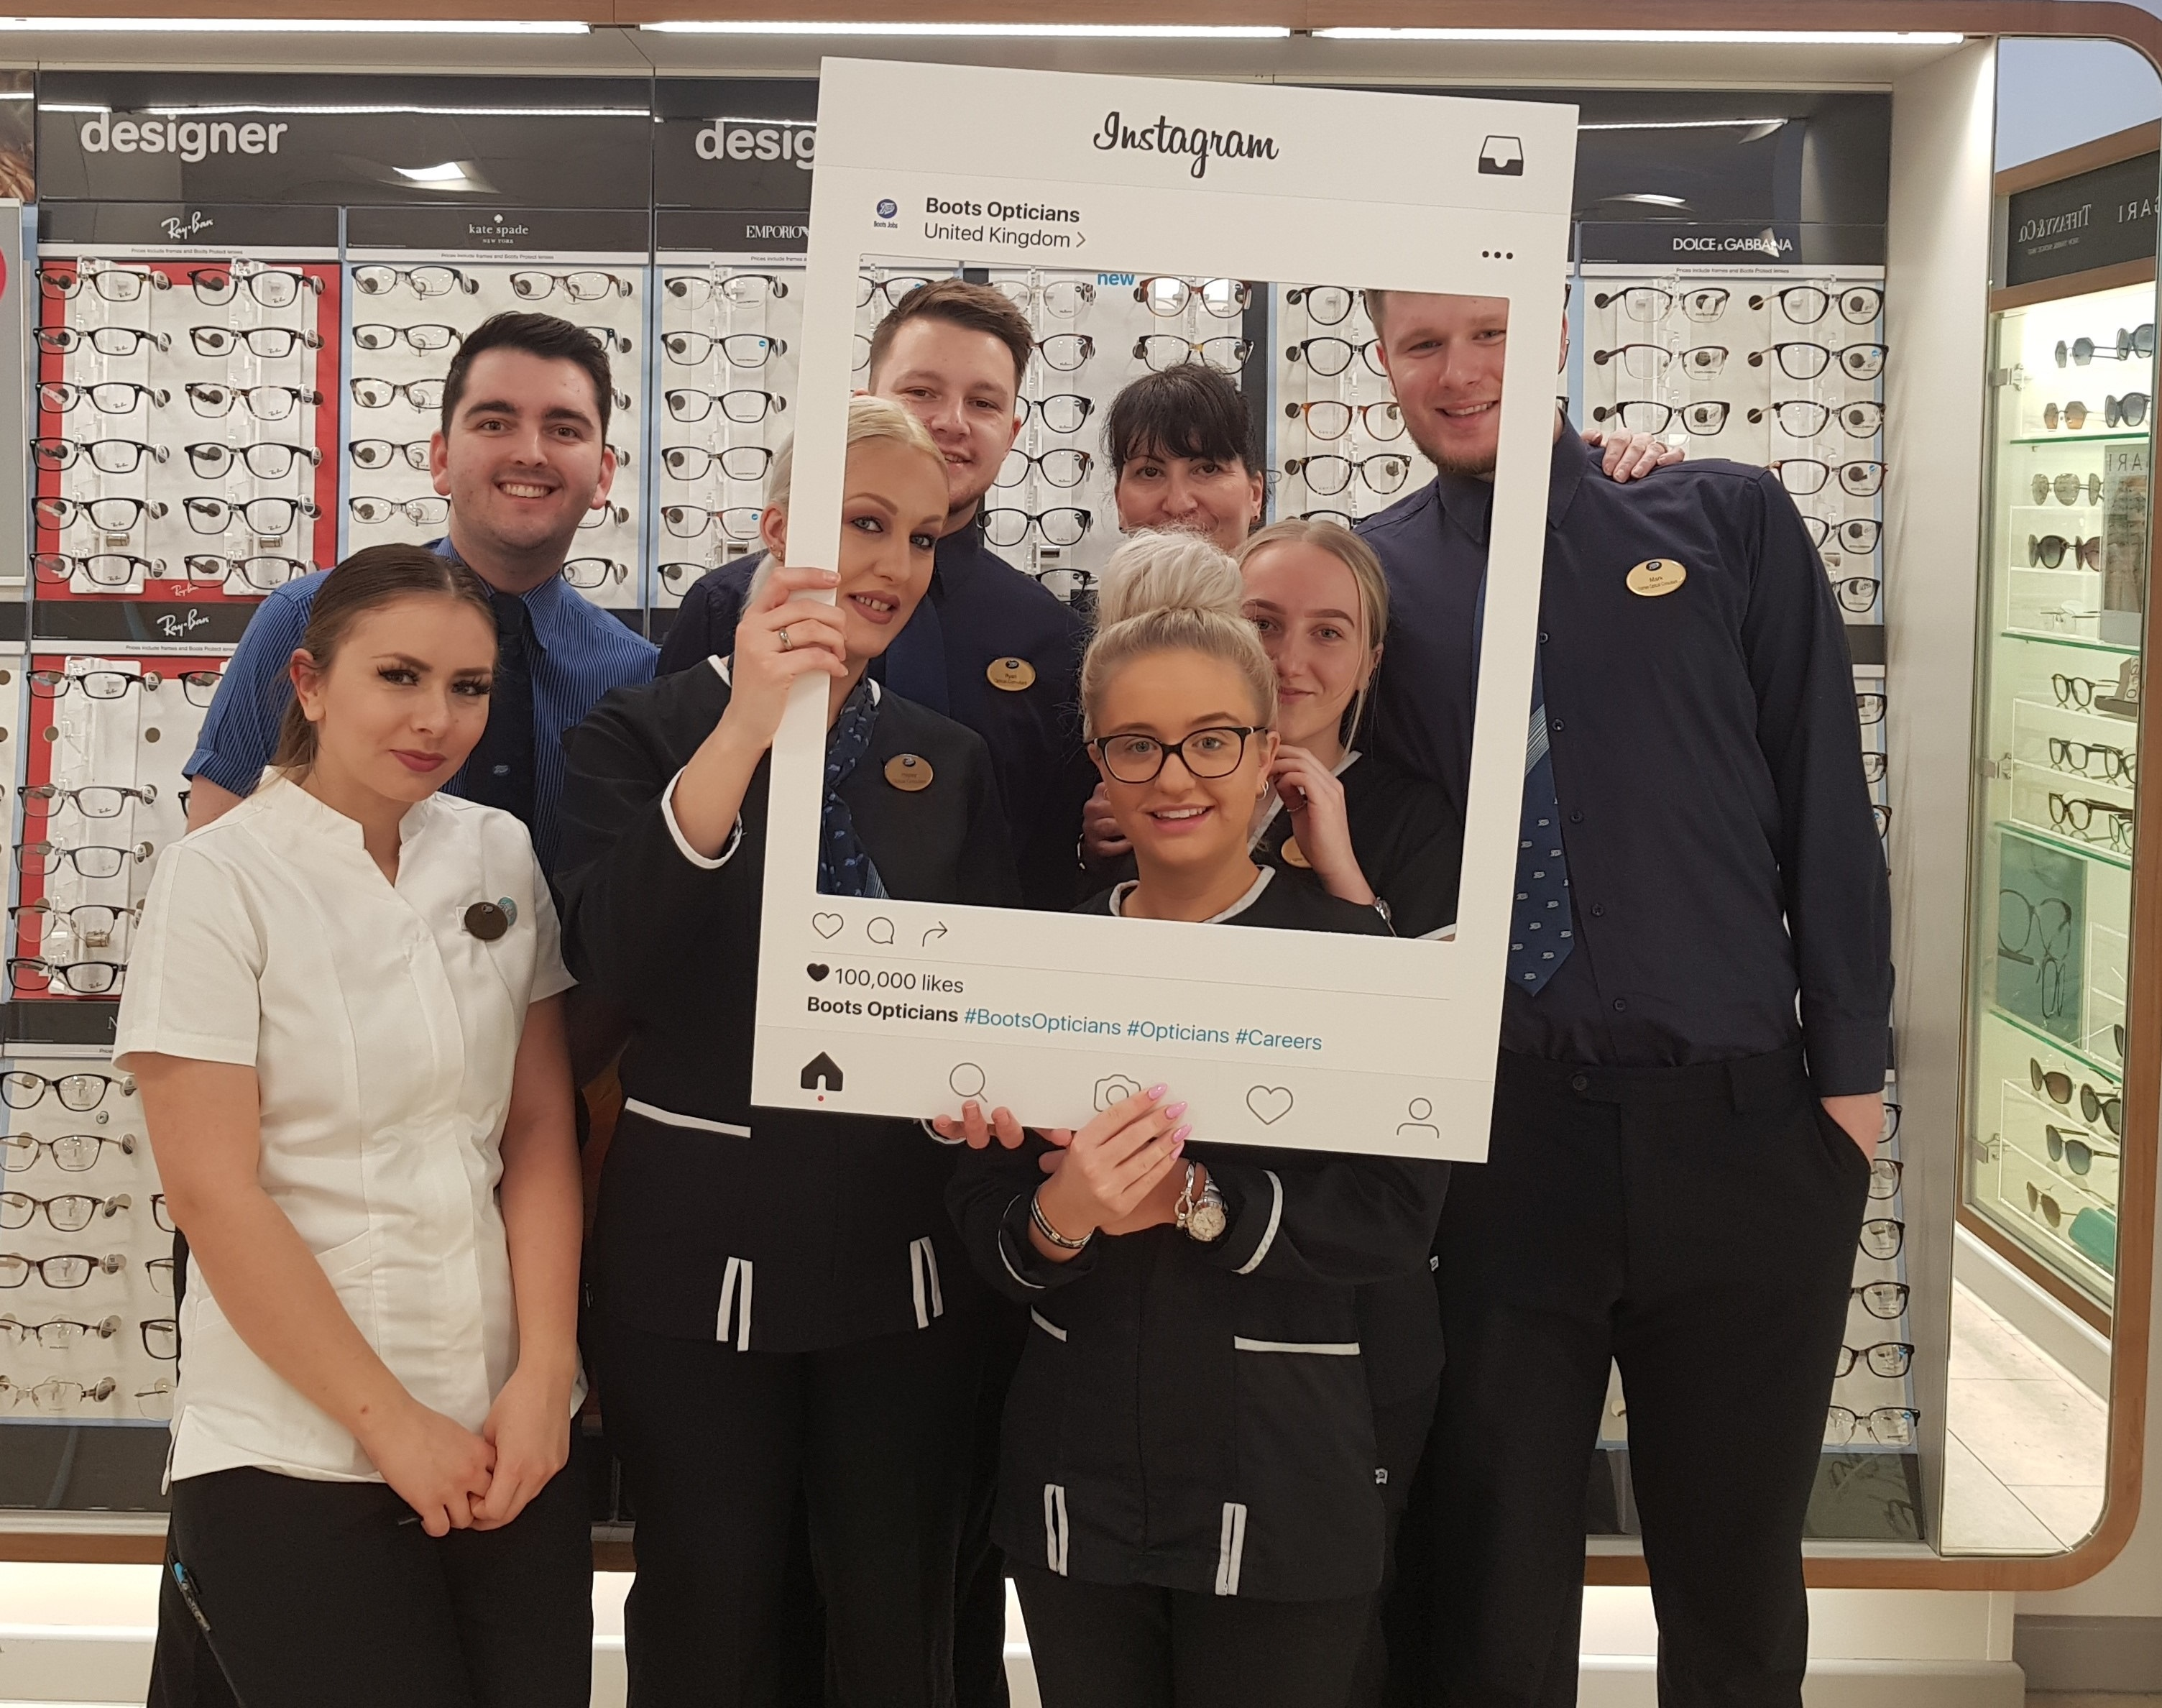 Ben Faulkner – From Assistant Manager To Dispensing Optician